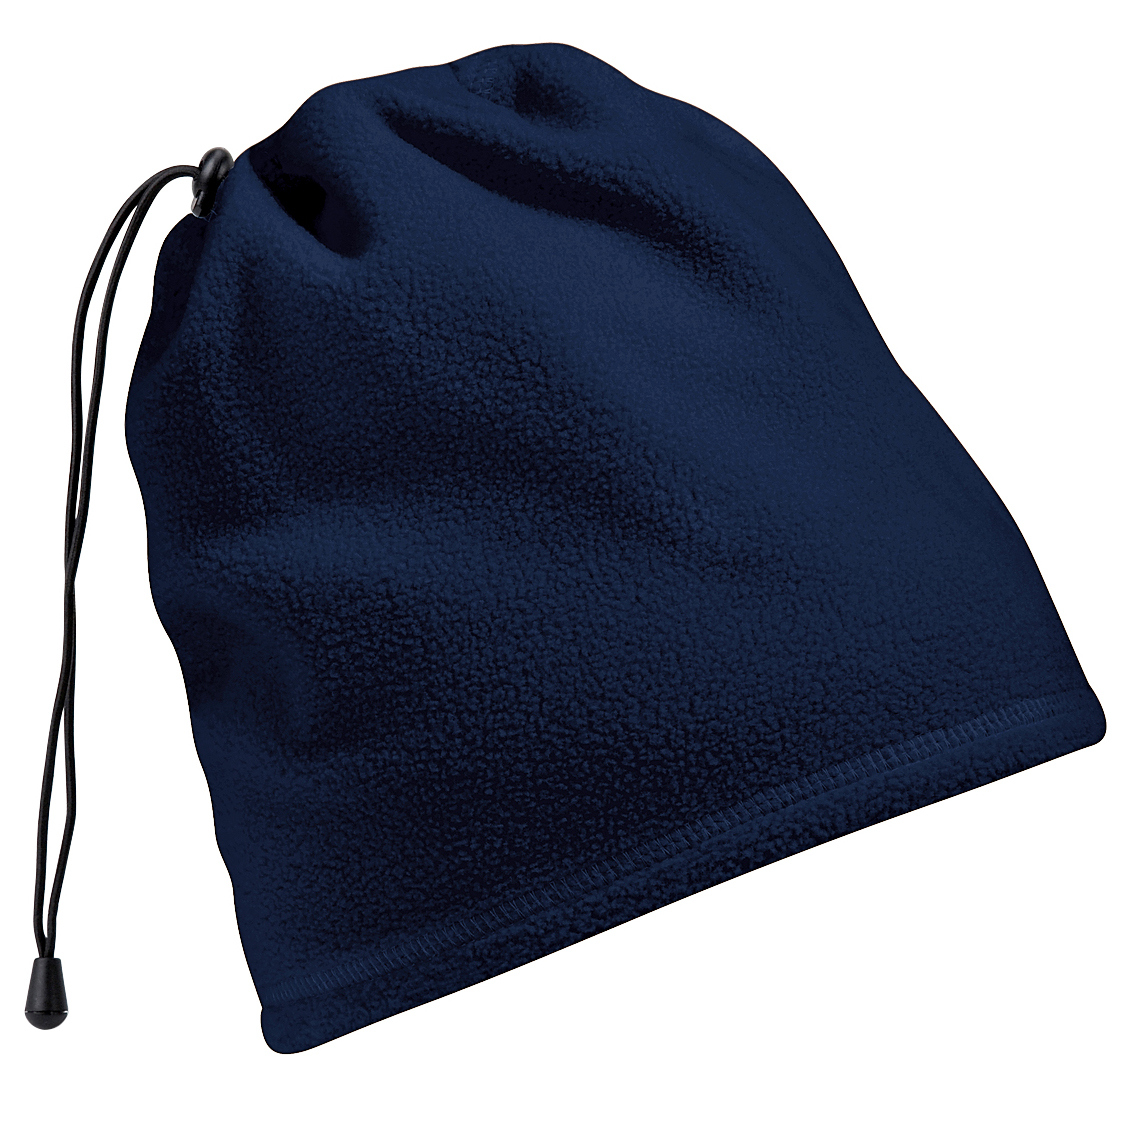 Beechfield Unisex Suprafleece Anti-Pilling 2in1 Winter Hat And Neck Warmer/Snood (One Size) (French Navy)